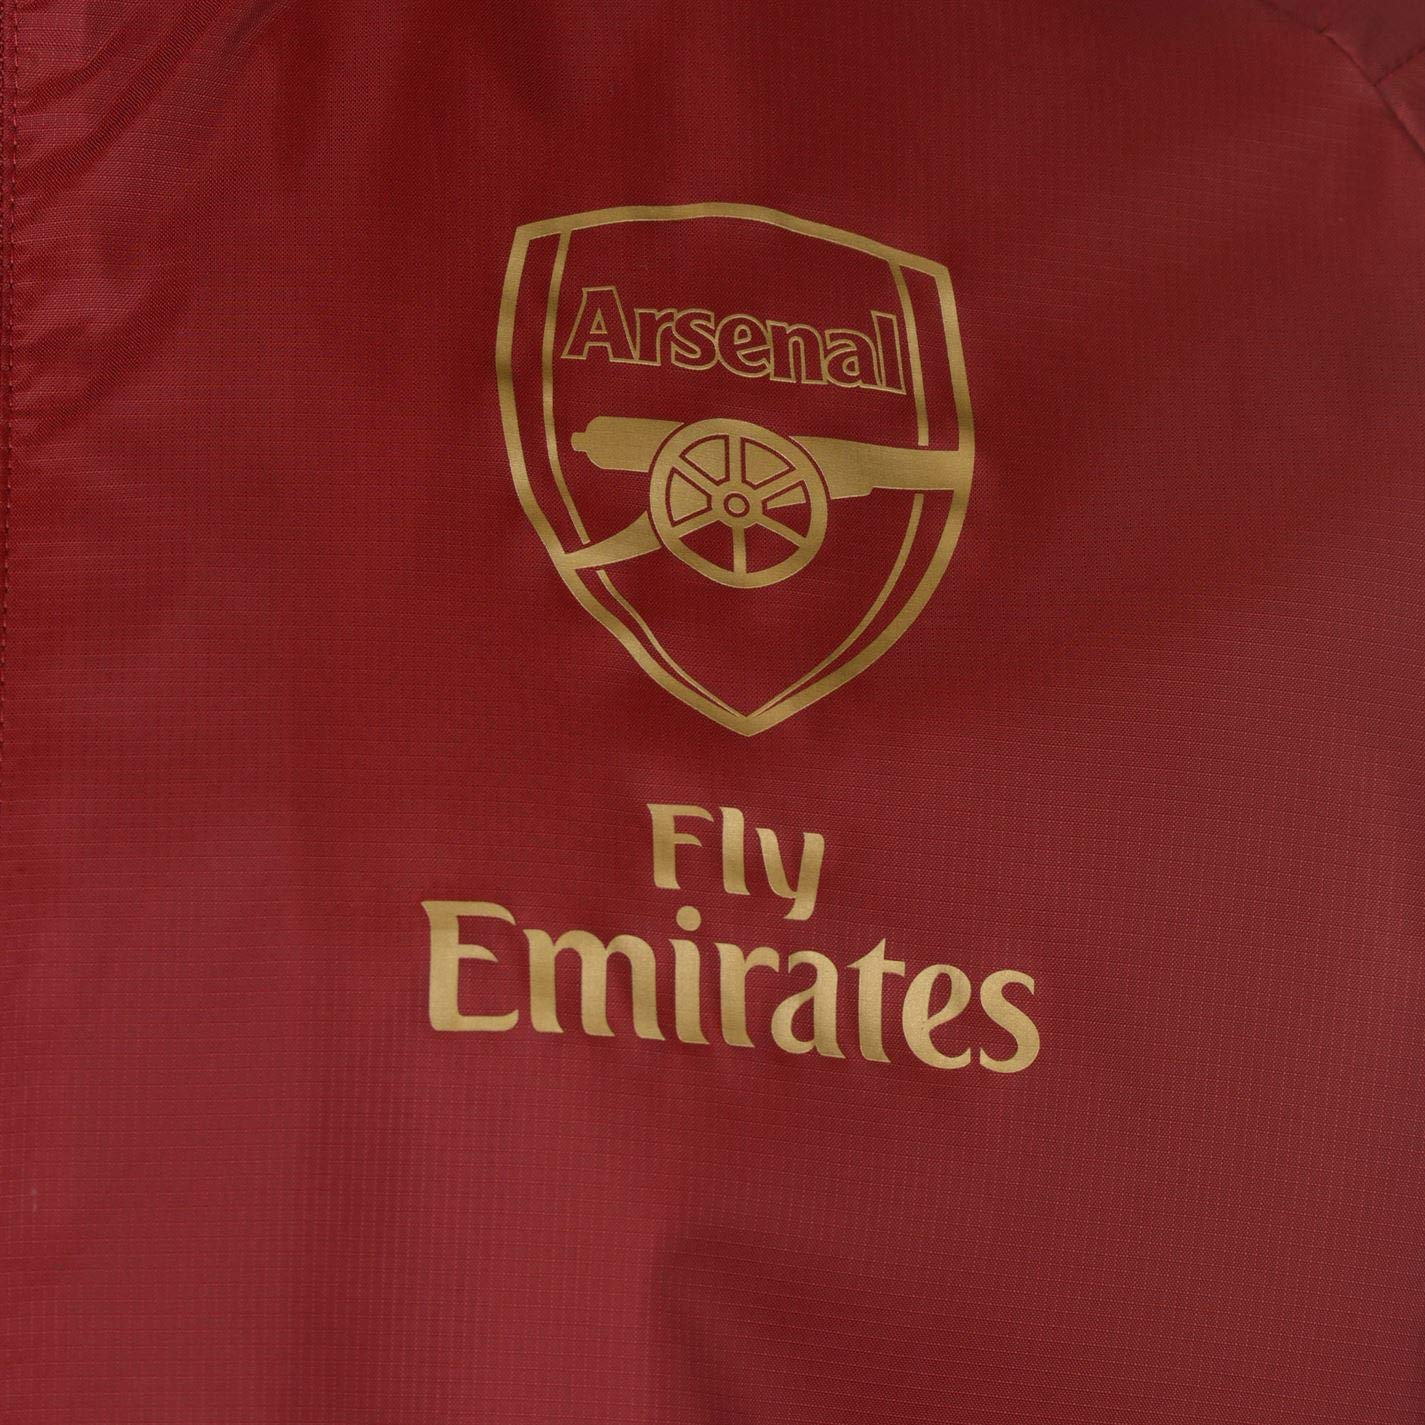 ede2bbef4c23 Puma Mens Arsenal Rain Jacket 2018 2019 Red XL  Amazon.co.uk  Sports    Outdoors